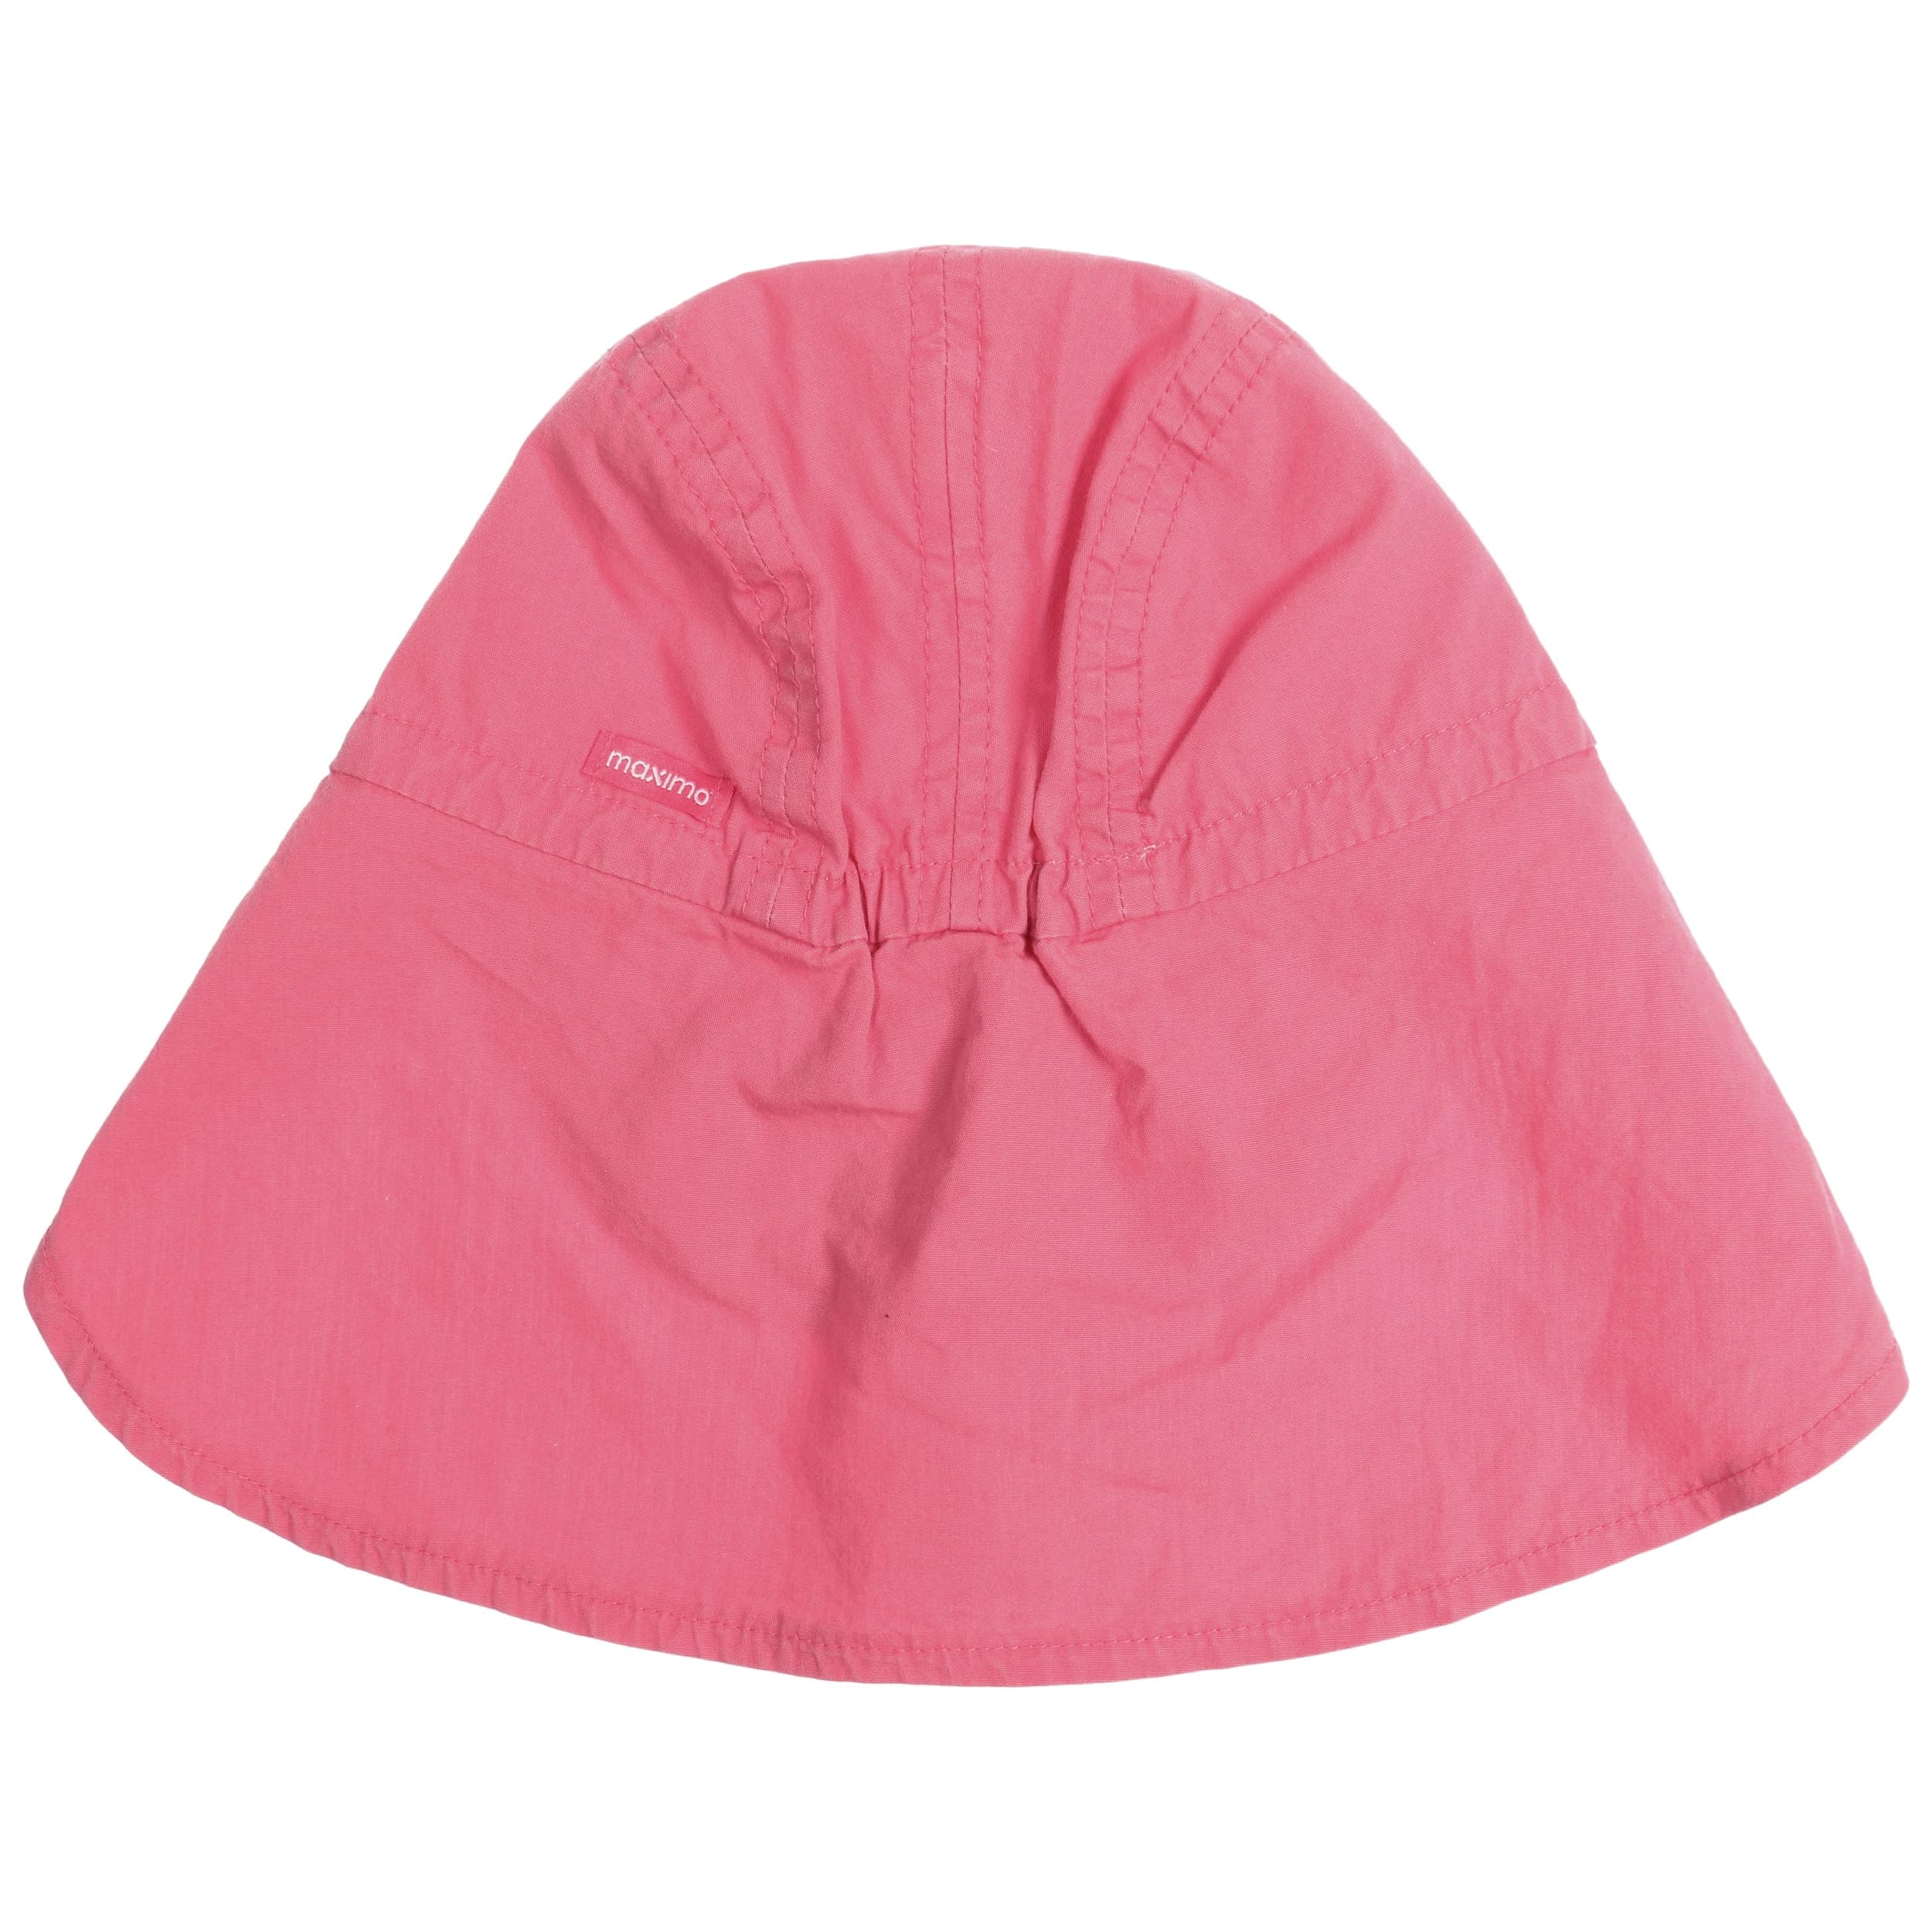 6604d77afa5 ... Girls Washed Neck Protection Cap by maximo - rose 2 ...